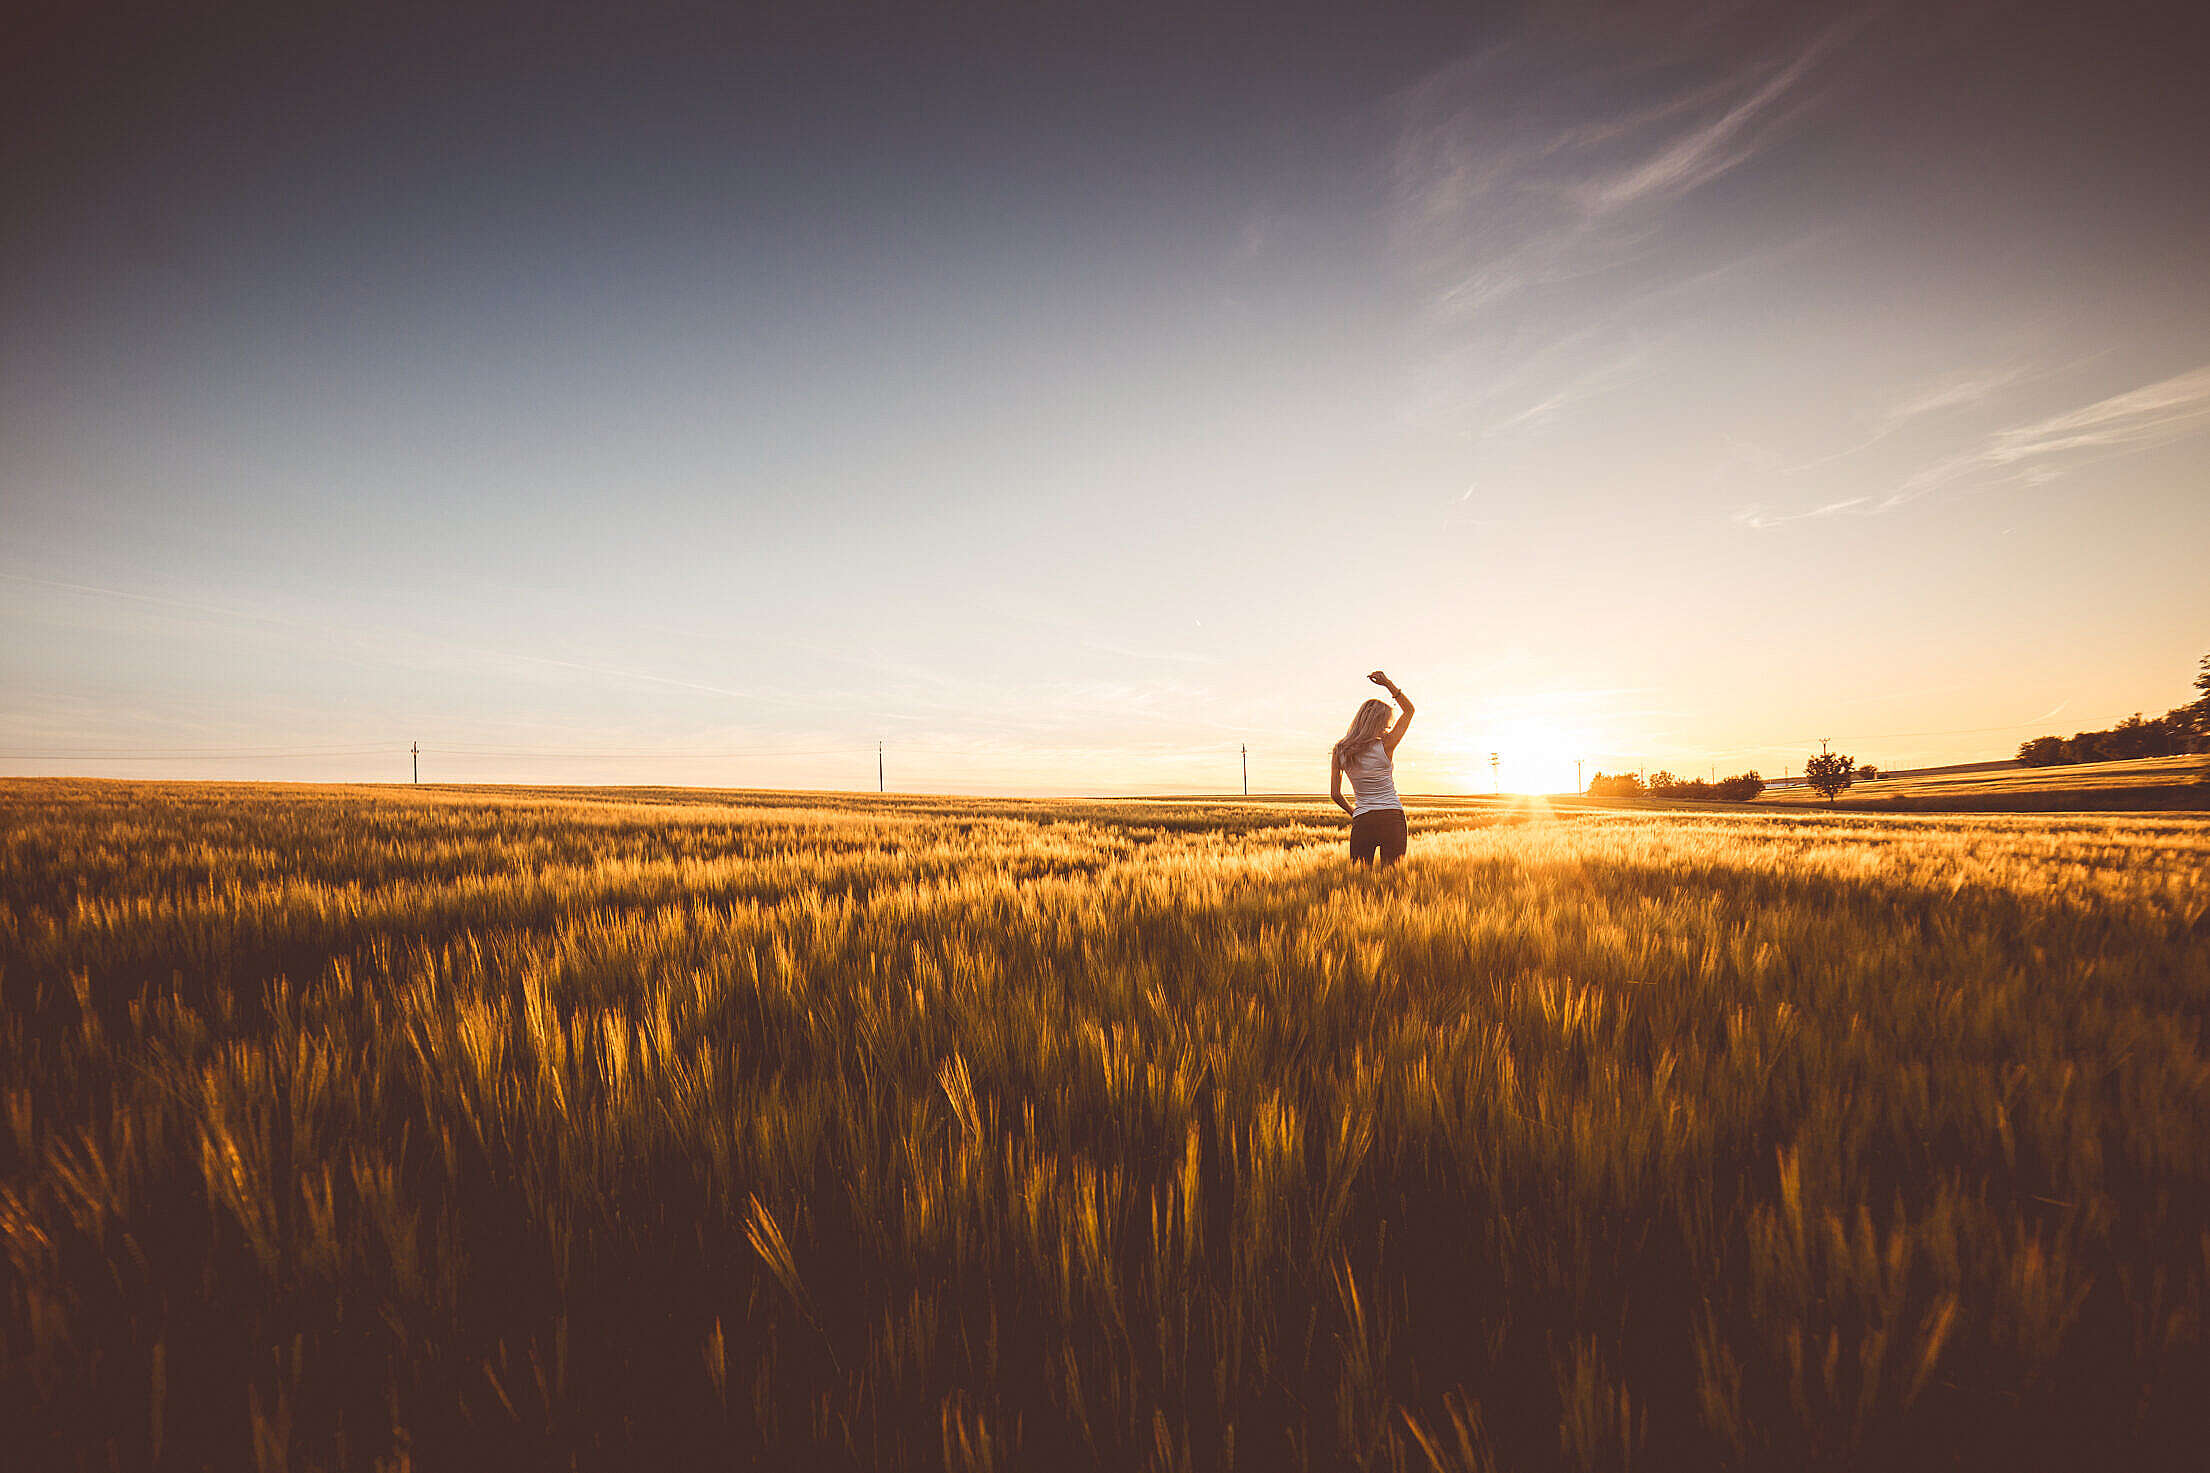 Happy Girl Dancing in a Wheat Field on Sunset Free Stock Photo